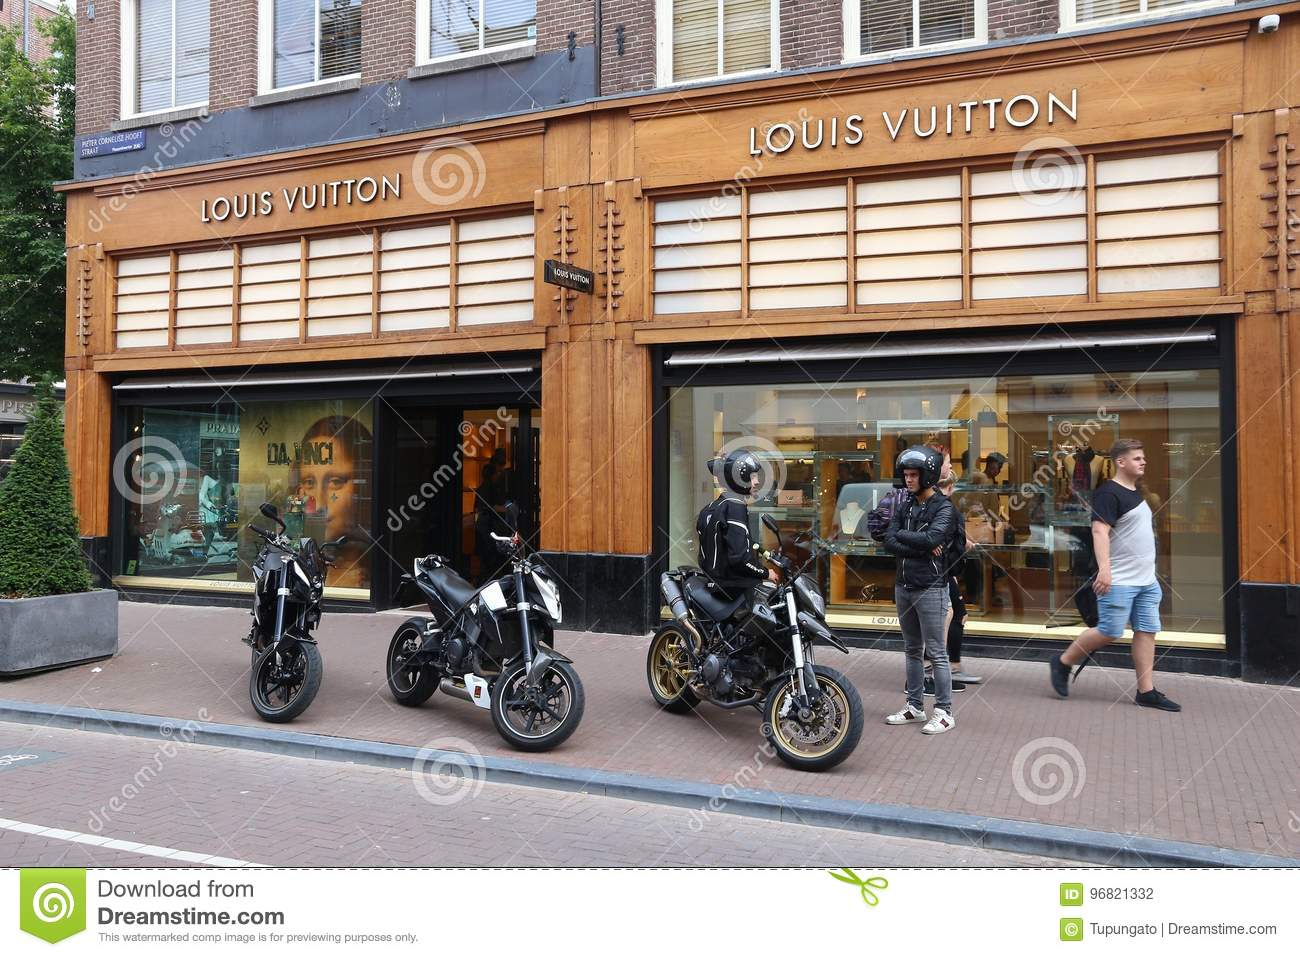 30cd6ddd635 Louis Vuitton, Netherlands editorial photography. Image of street ...